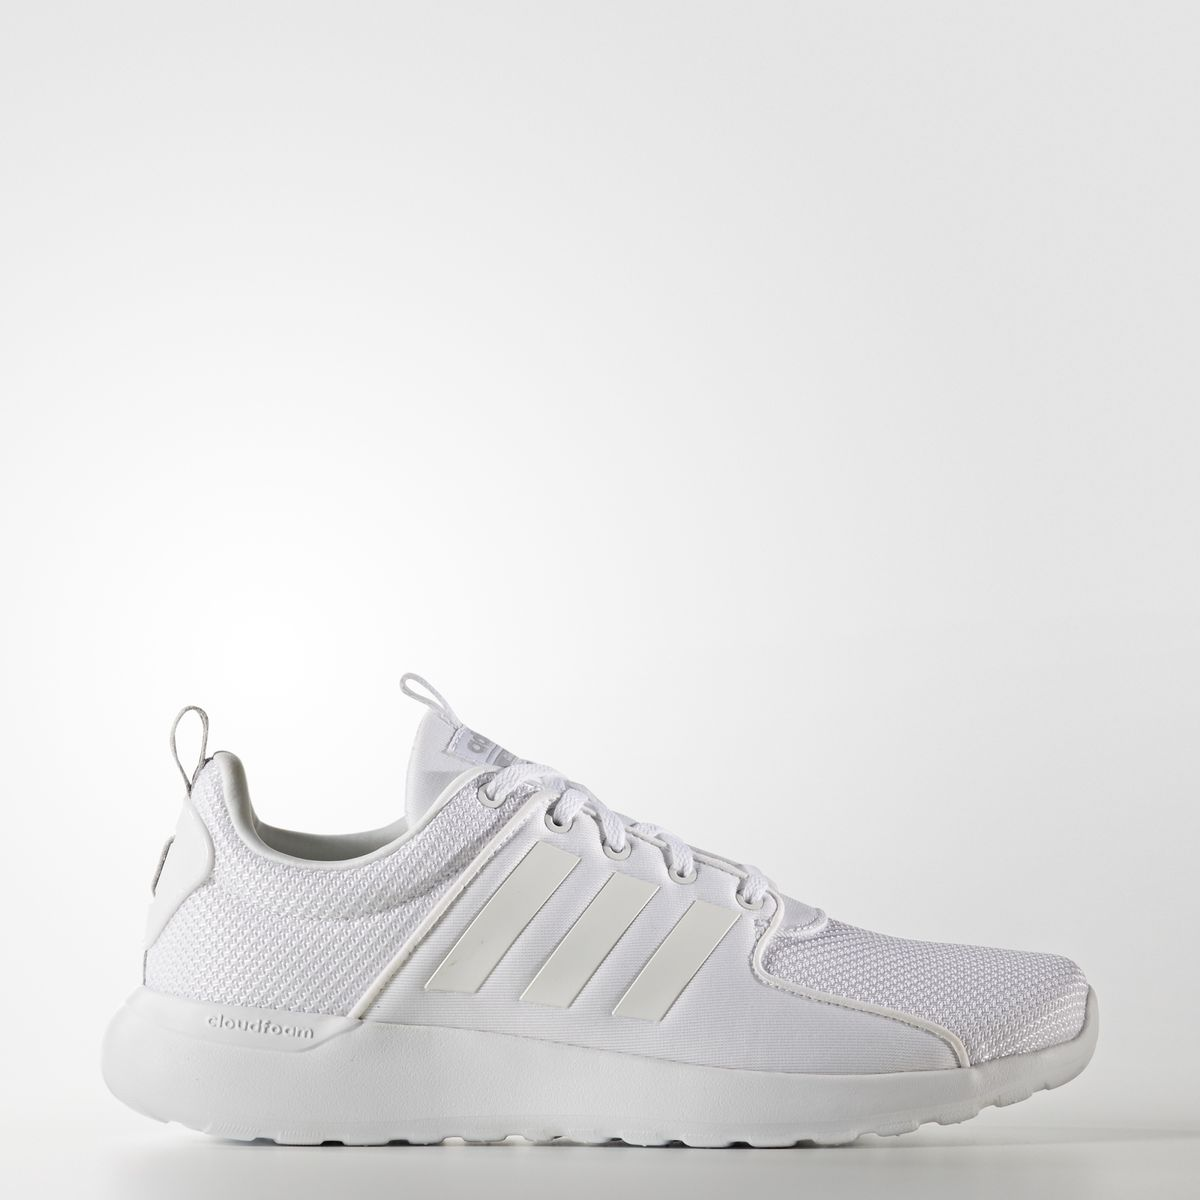 adidas neo cloudfoam dual layer